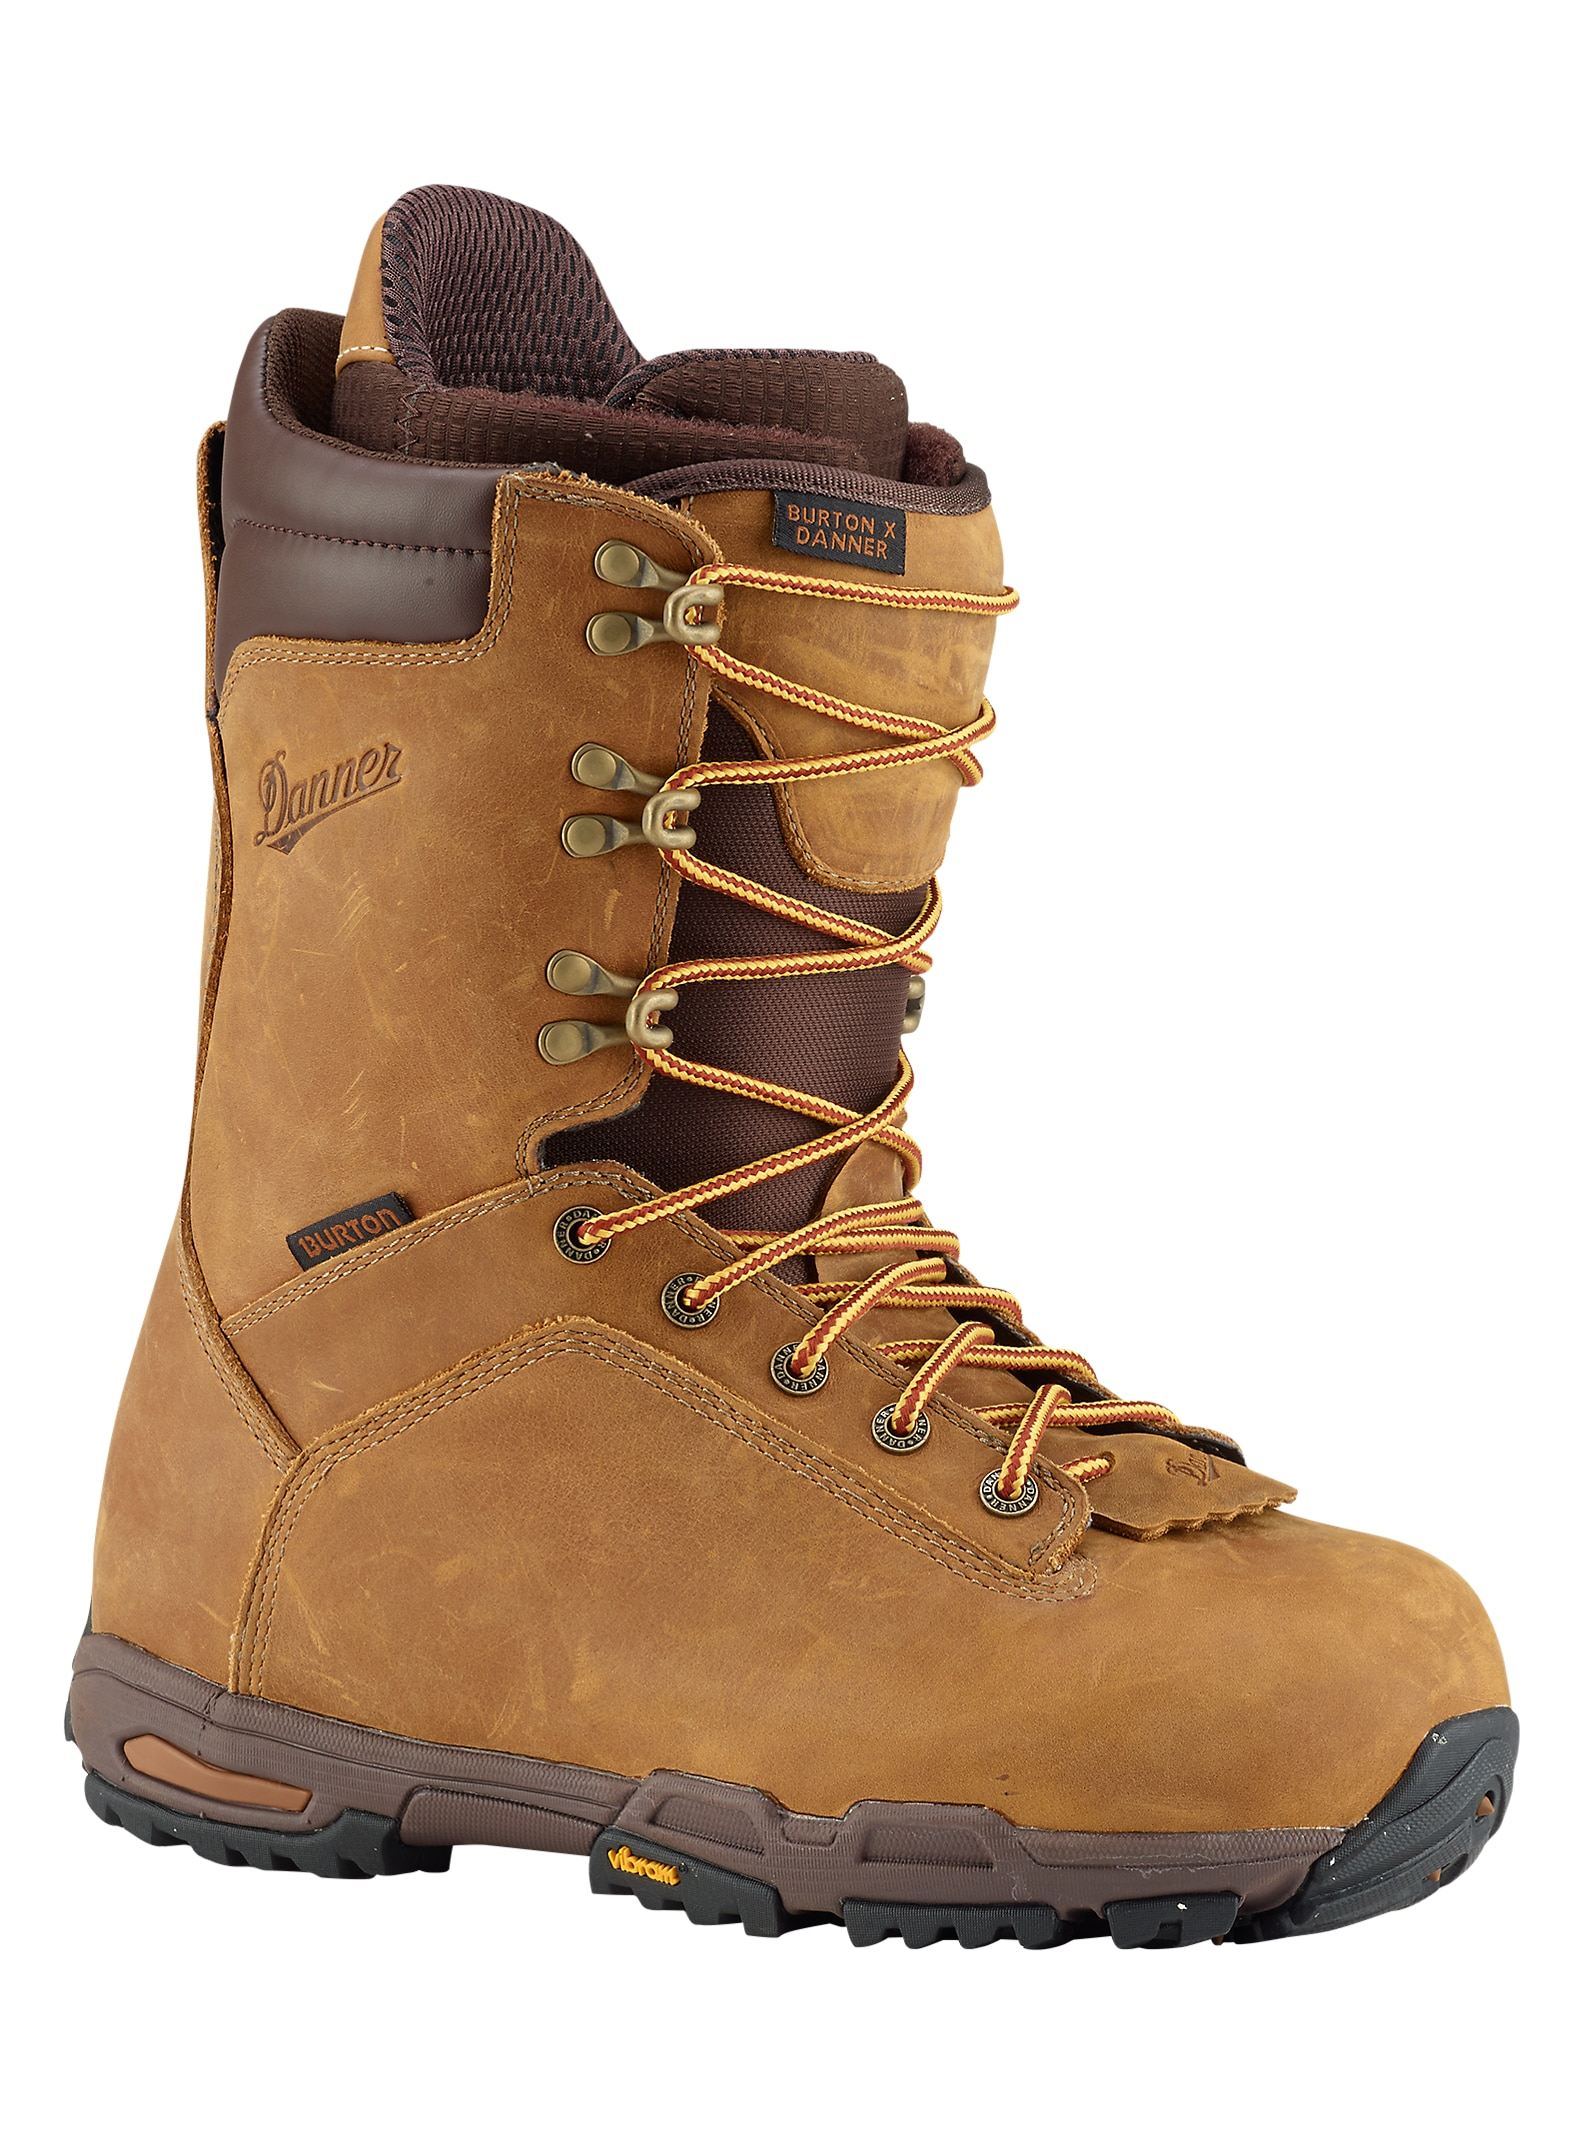 Danner Winter Boots Coltford Boots